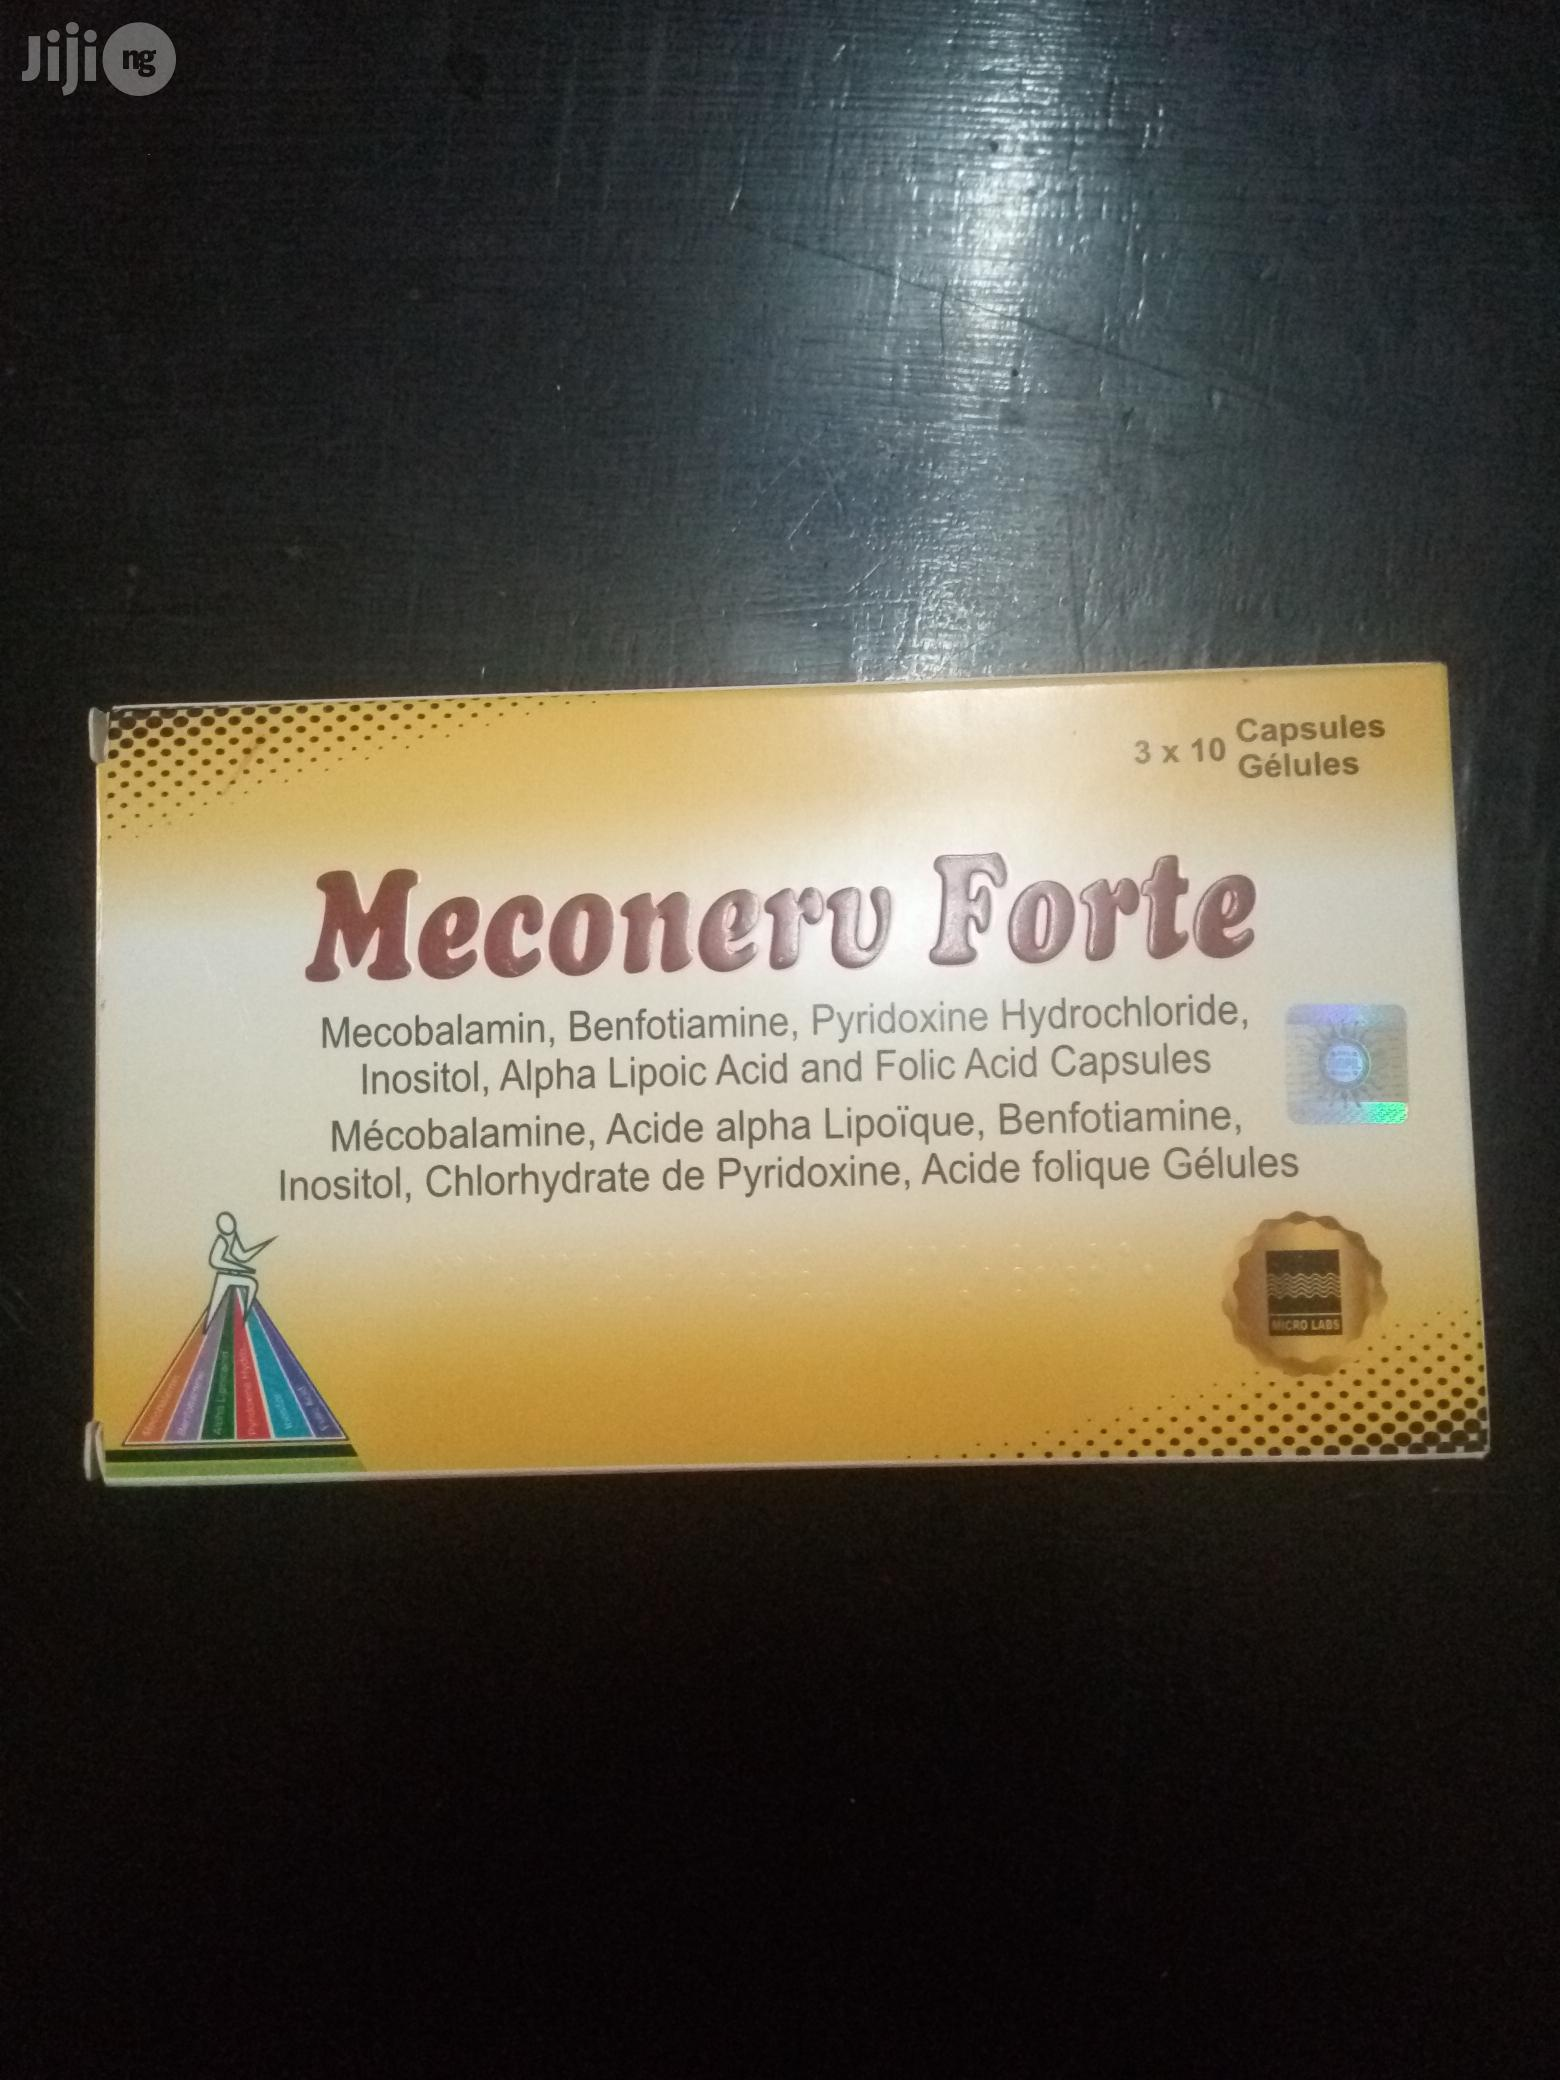 Meconerve Forte For All Health Problems